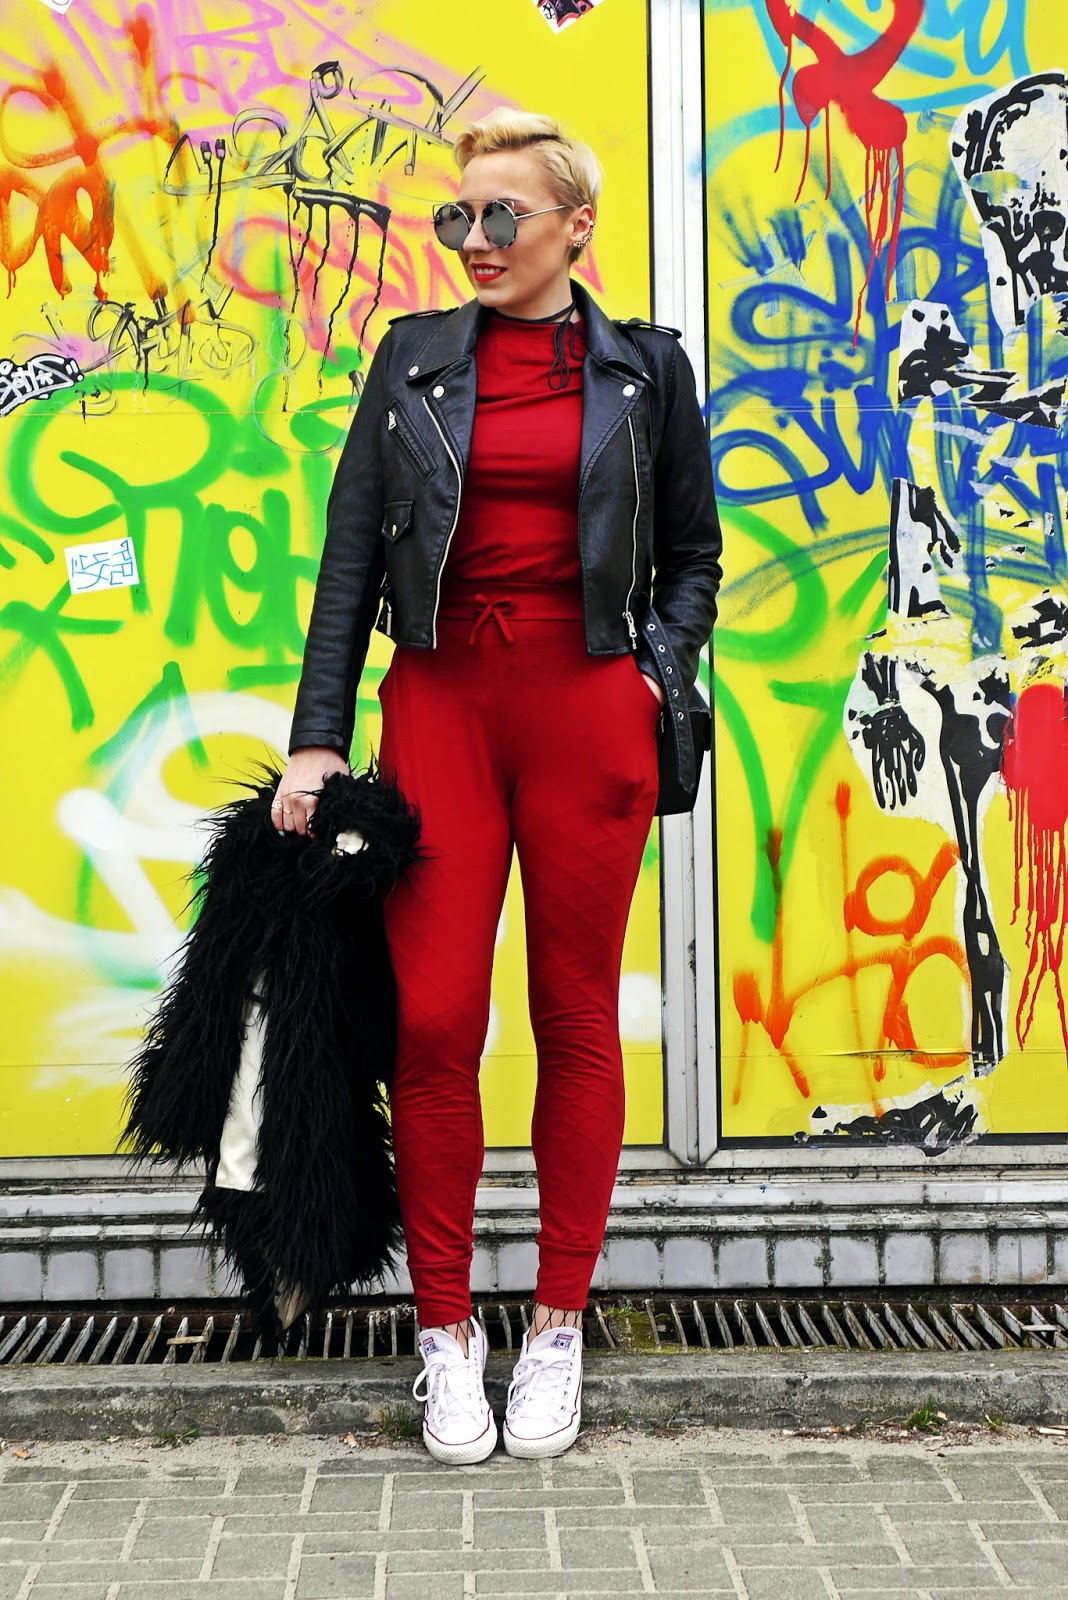 burgundy_jampsuit_black_biker_jacket_ootd_look_karyn_blog_280317